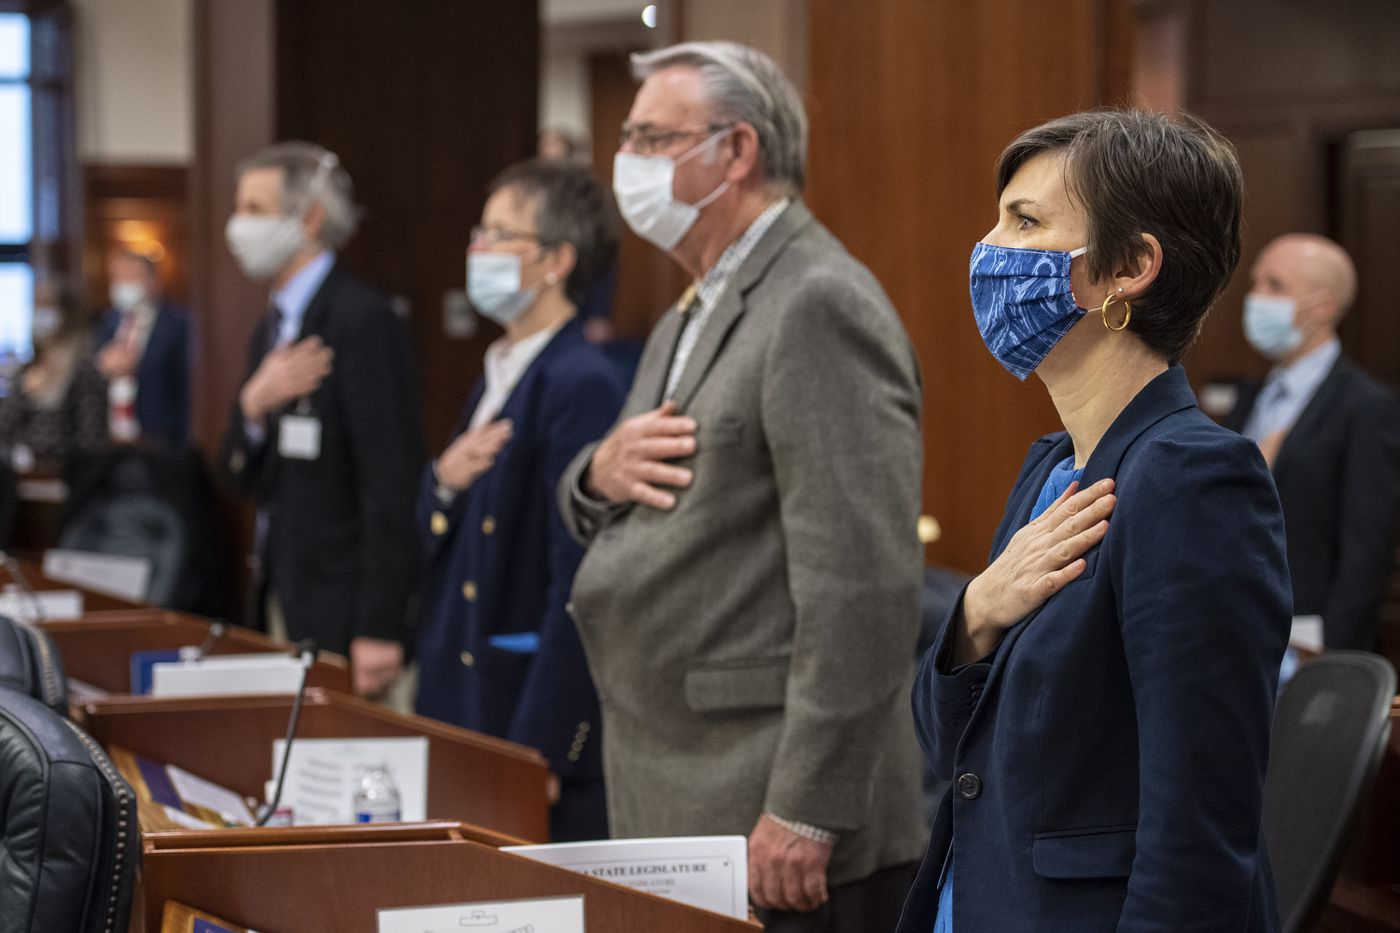 Alaska Representatives, including, from right to left: Ivy Spohnholz, D-Anchorage, Mel Gillis, R-Anchorage, Sarah Vance, R-Homer, Matt Claman, D-Anchorage, recite the Pledge of Allegiance as legislators return to the Capitol in Juneau on Monday, May 18, 2020, under new health mandates as they consider Gov. Mike Dunleavy's proposed use of federal Covid-19 money. (Photo by Michael Penn)